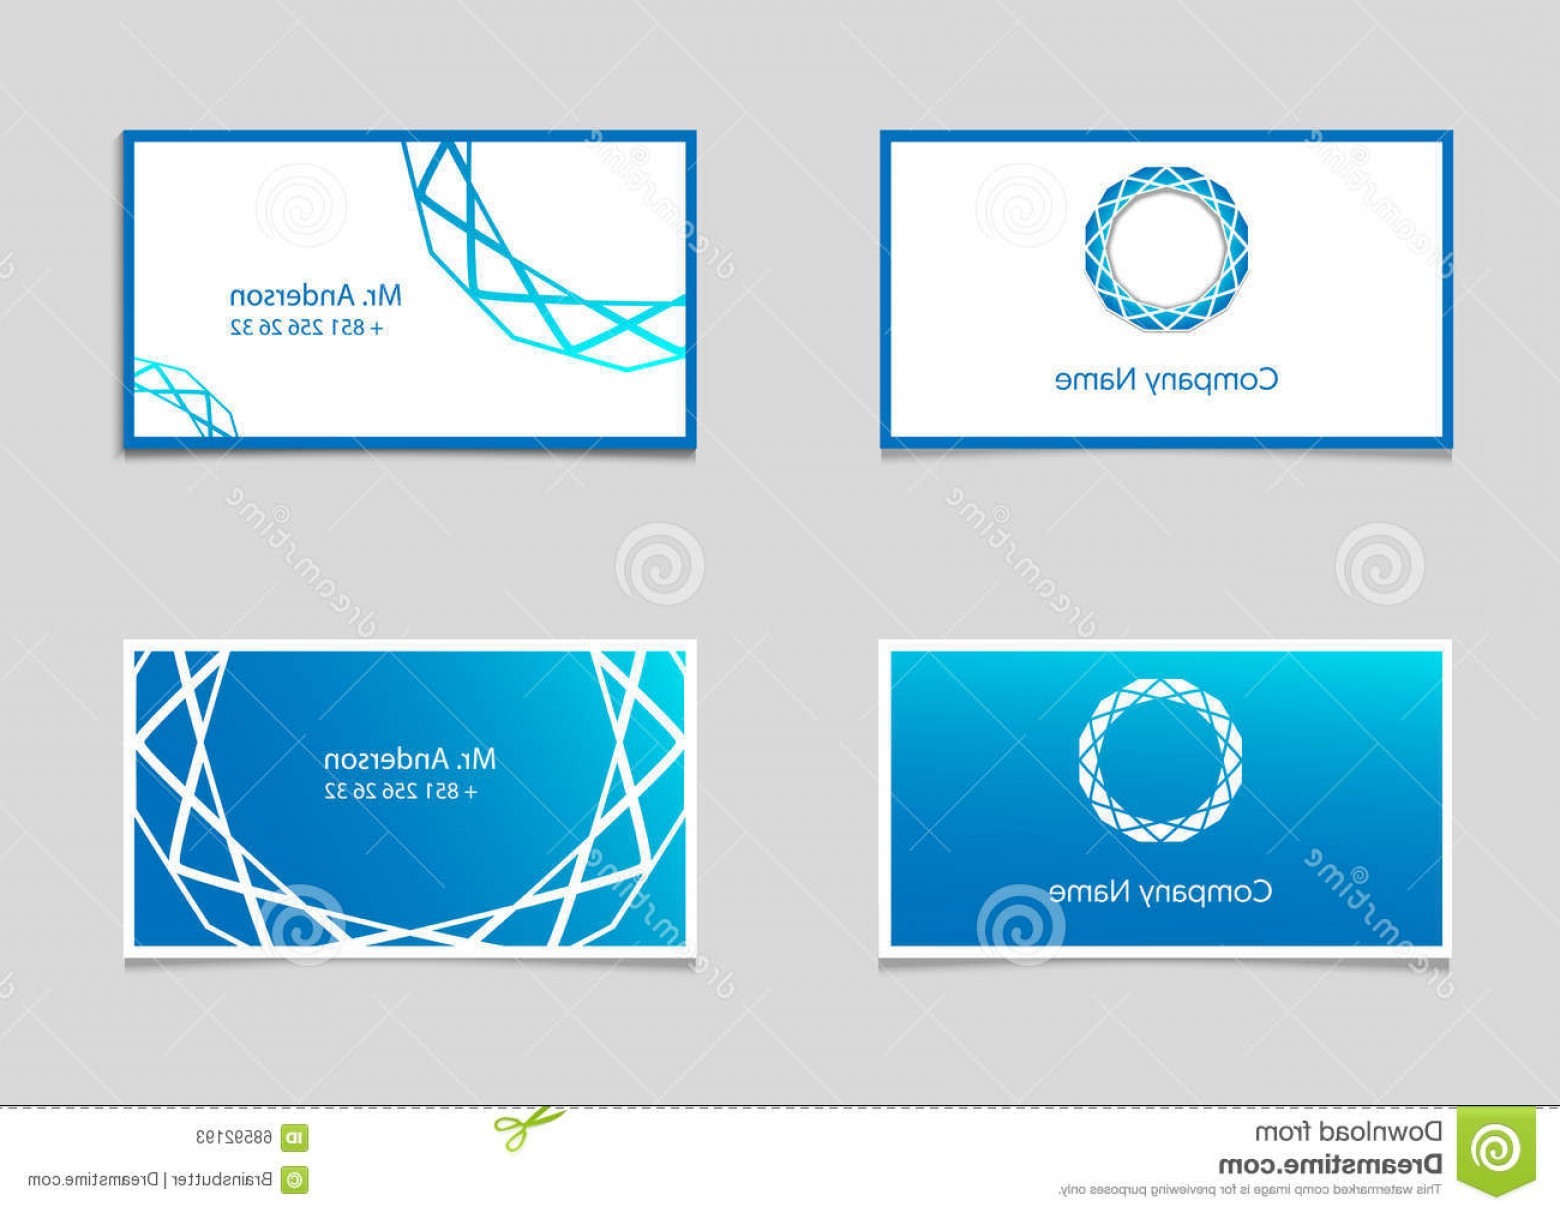 When Two Vectors Are Parallel: Stock Illustration Two Vector Business Card Templates Blue Gradient Company Logo Image